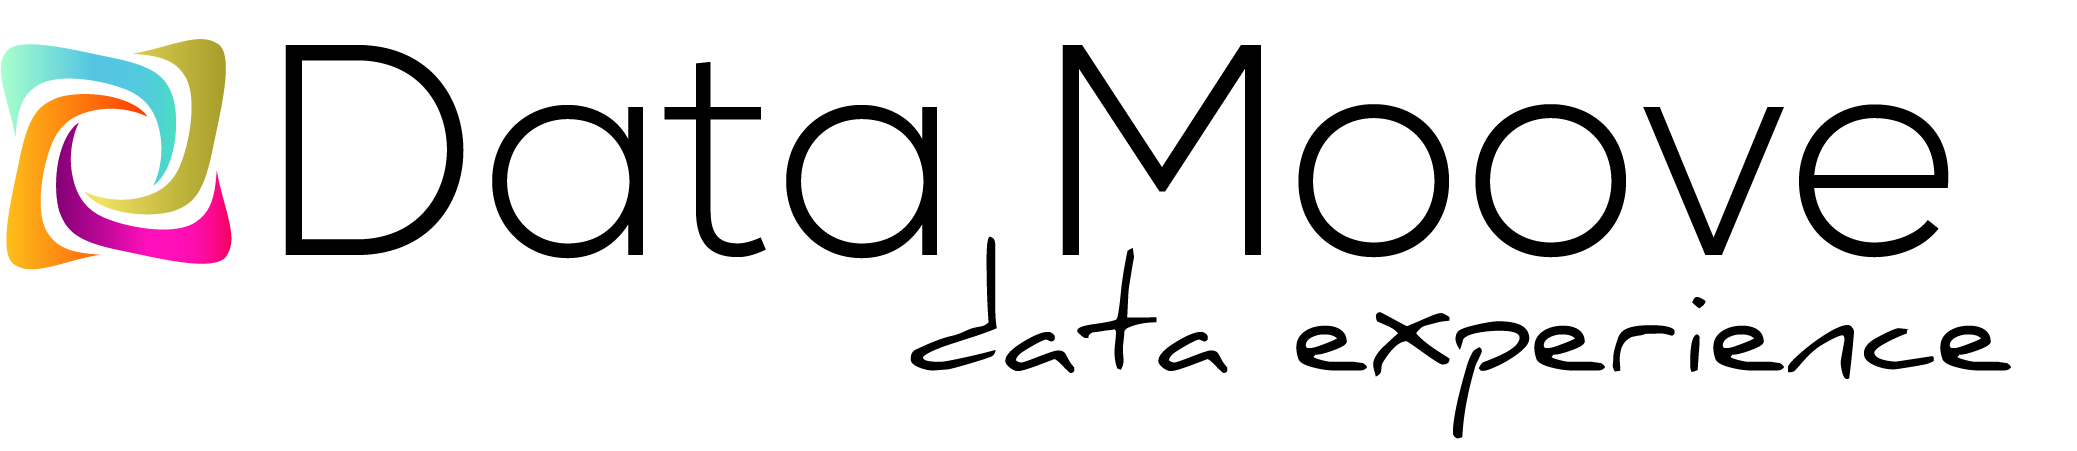 datamoove-logo-data-expeience